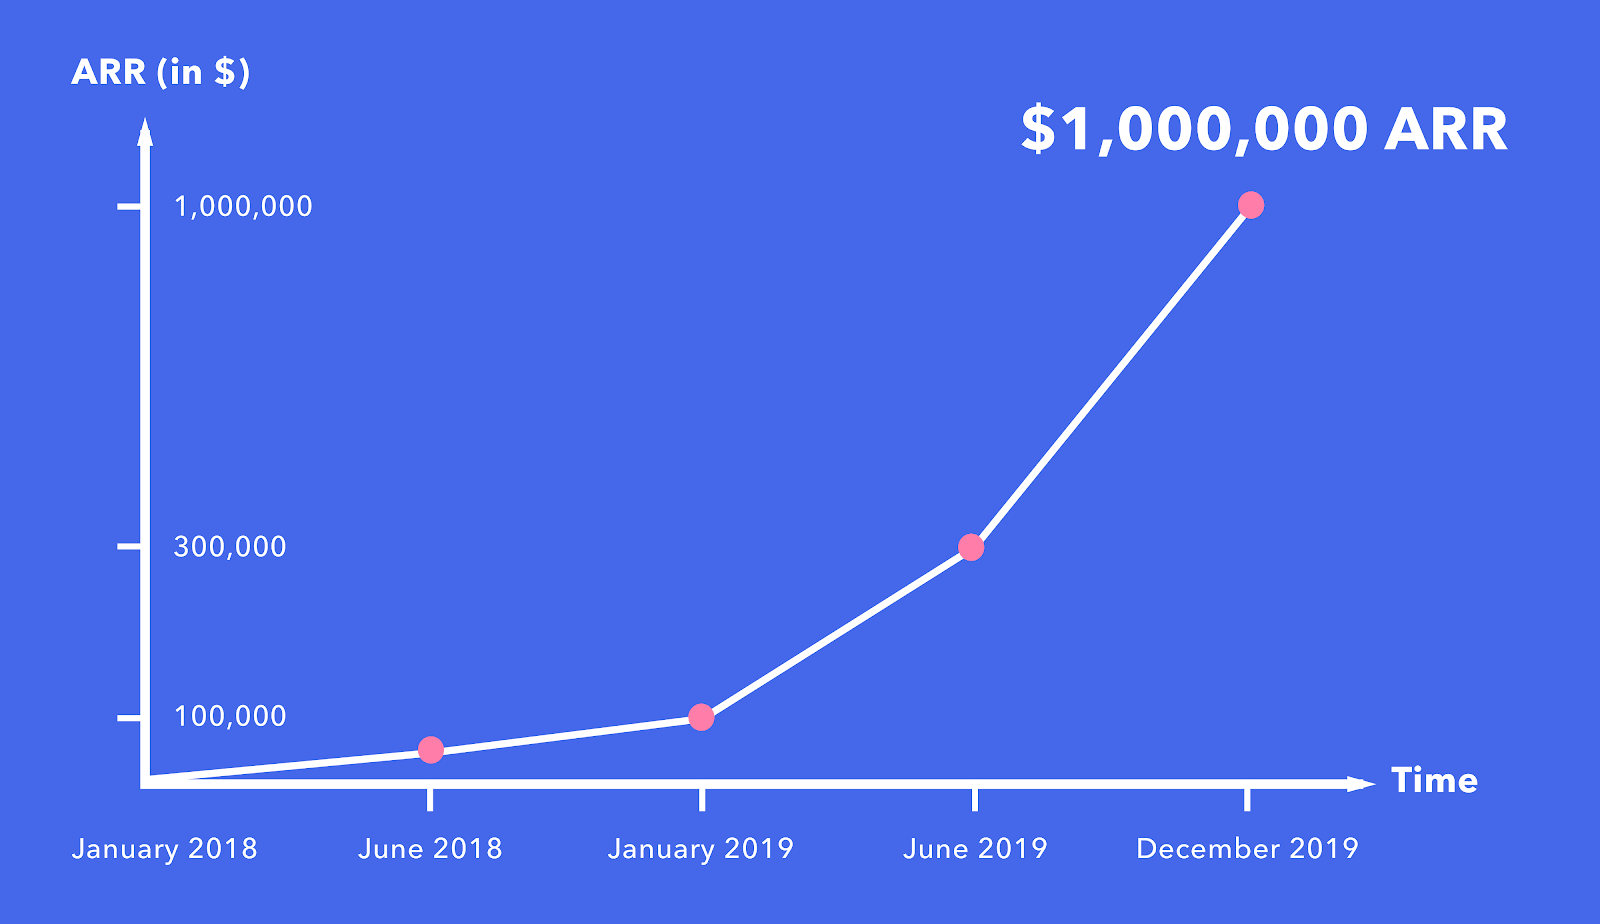 Lemlist's revenue